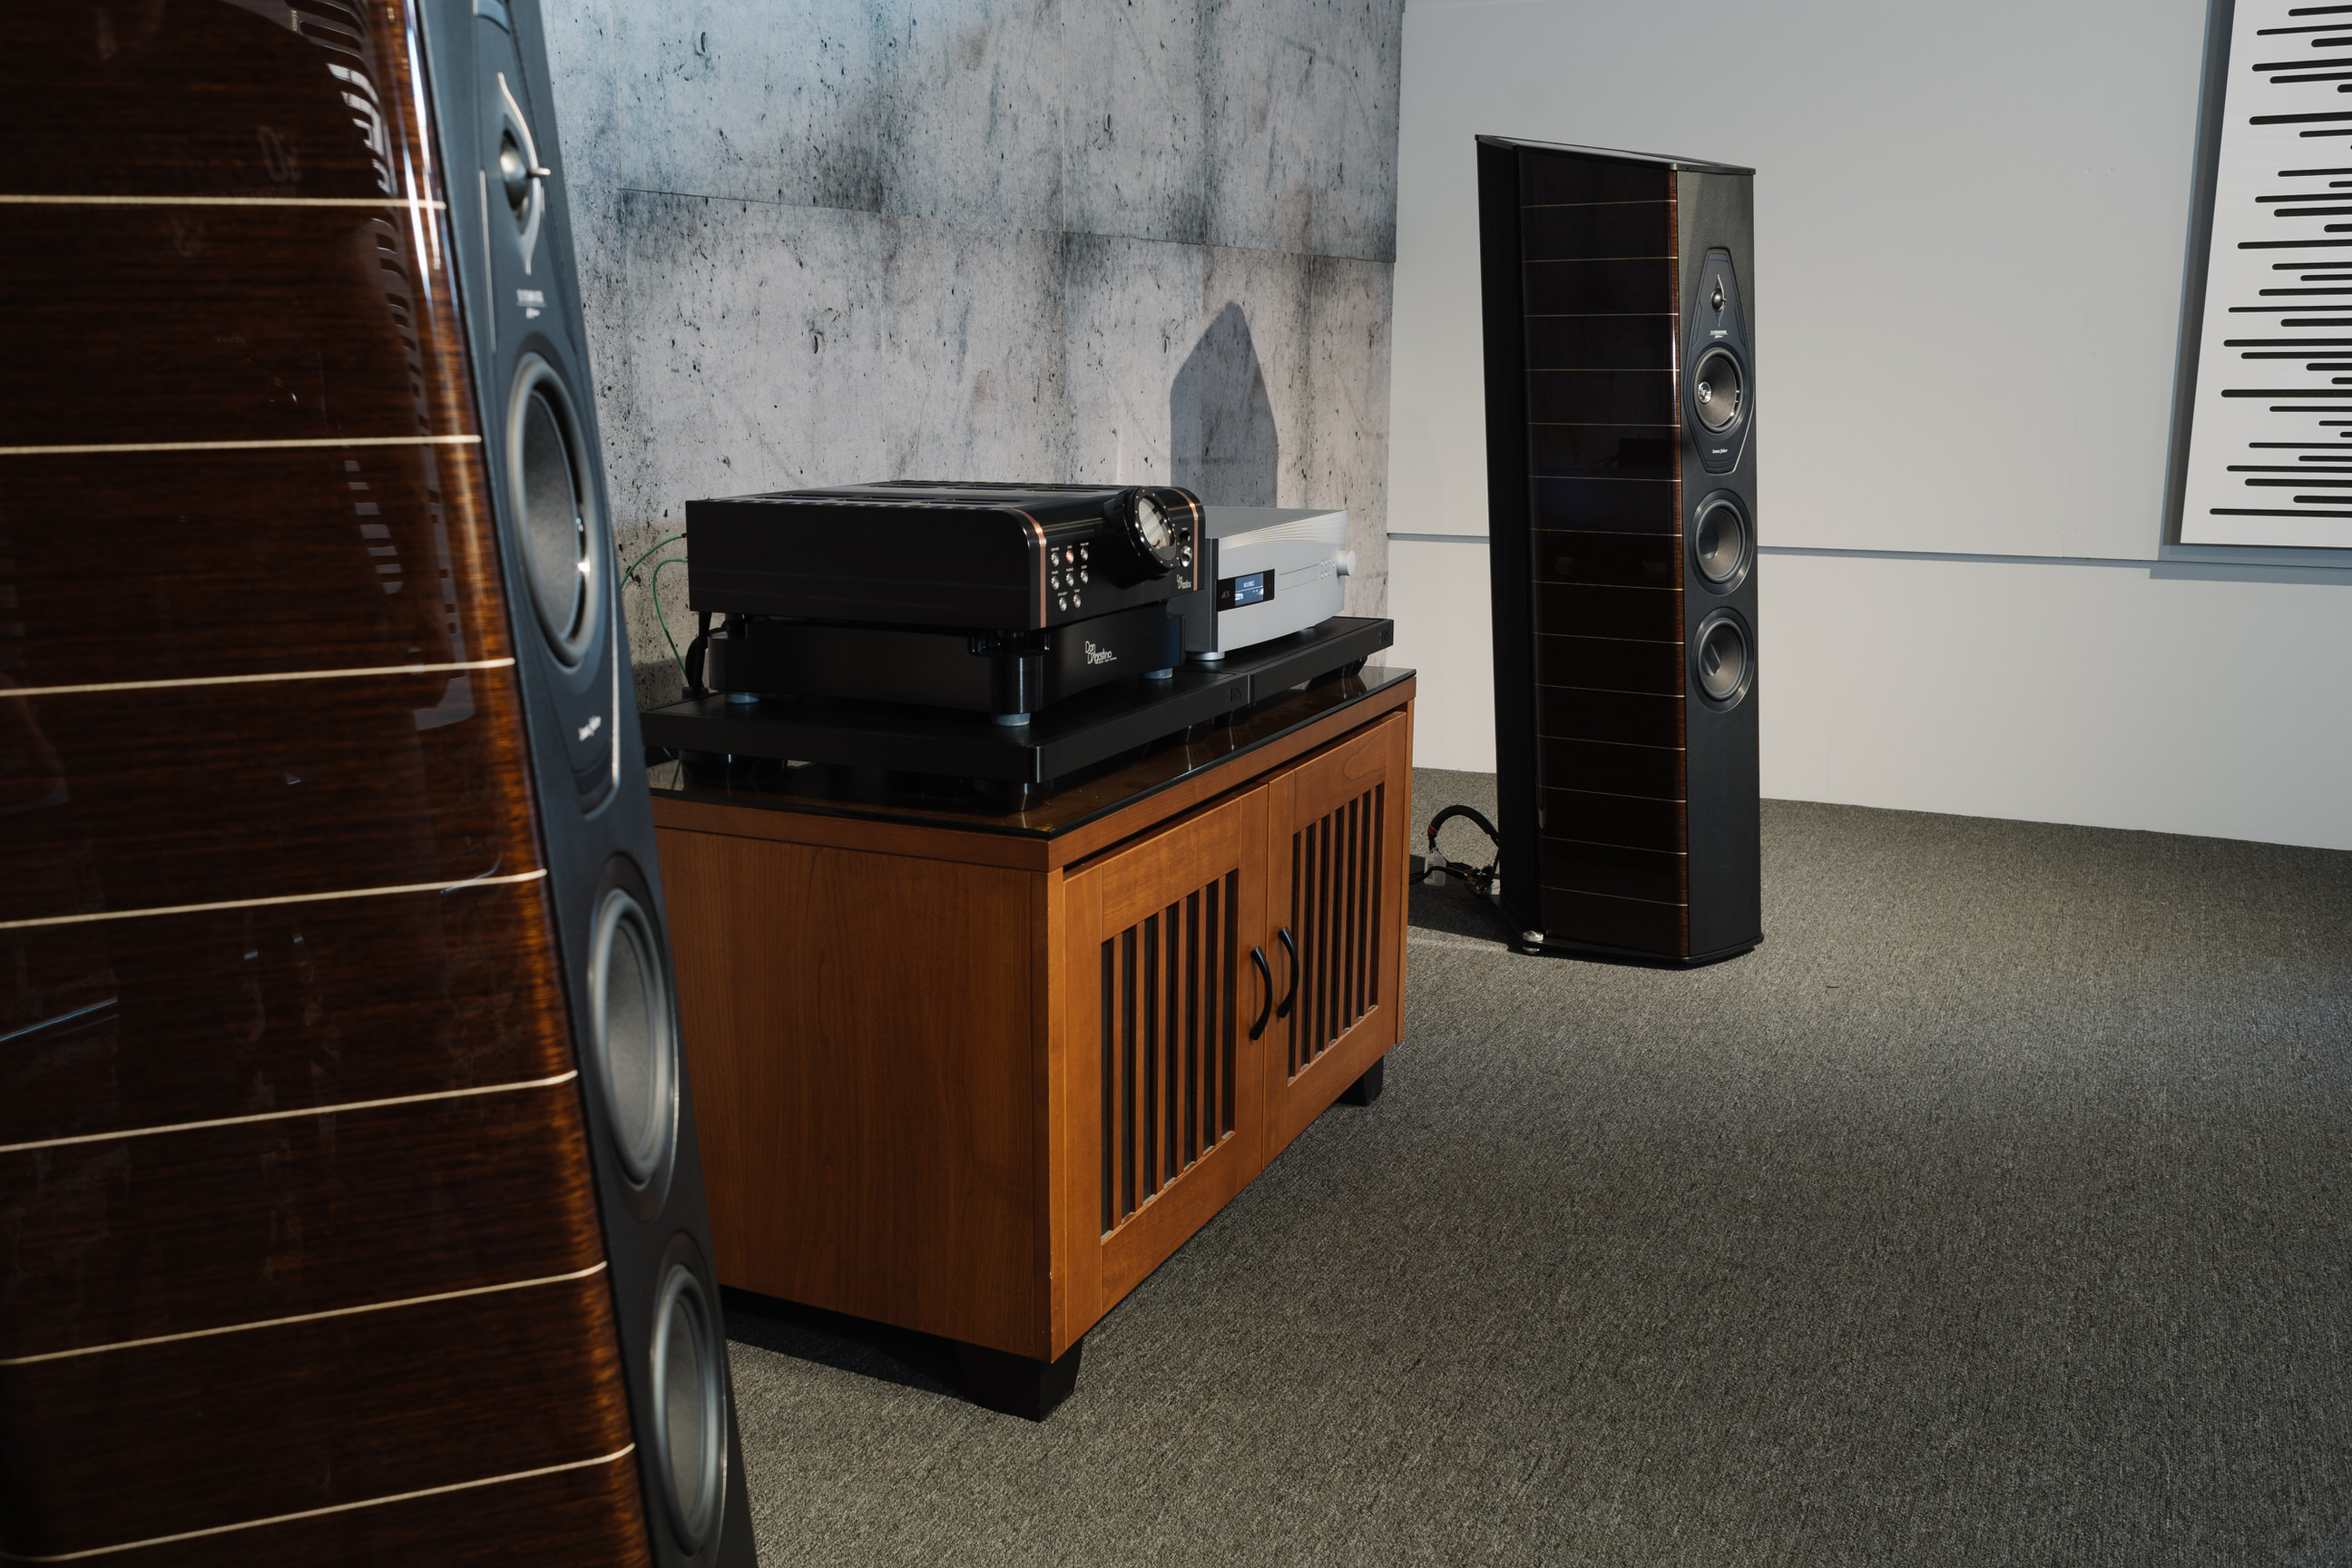 Upcoming Sonus faber Events – The Sound Environment